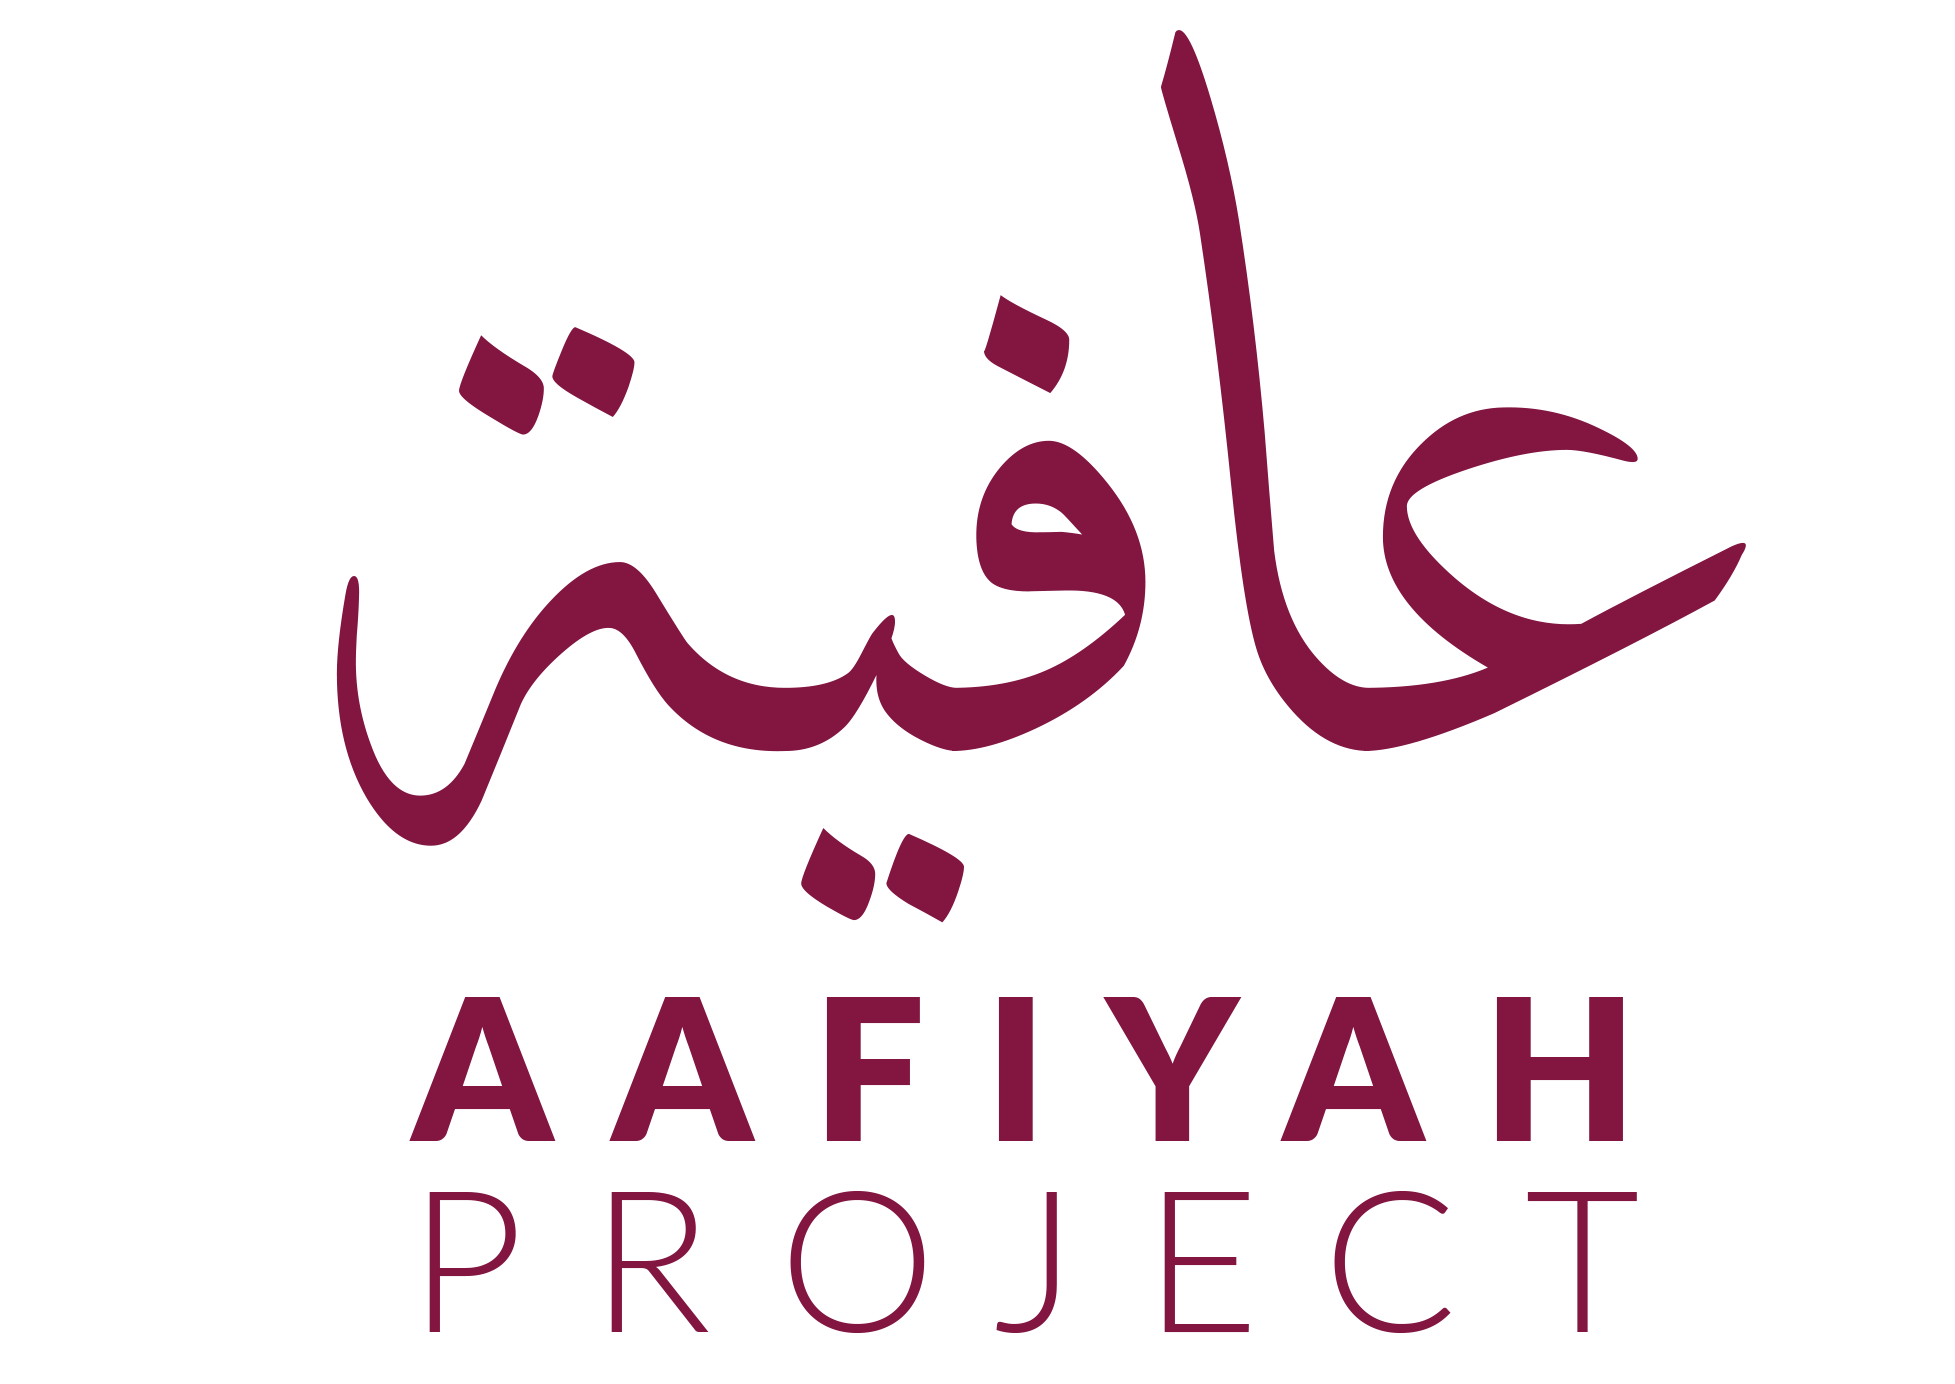 The Aafiyah Project